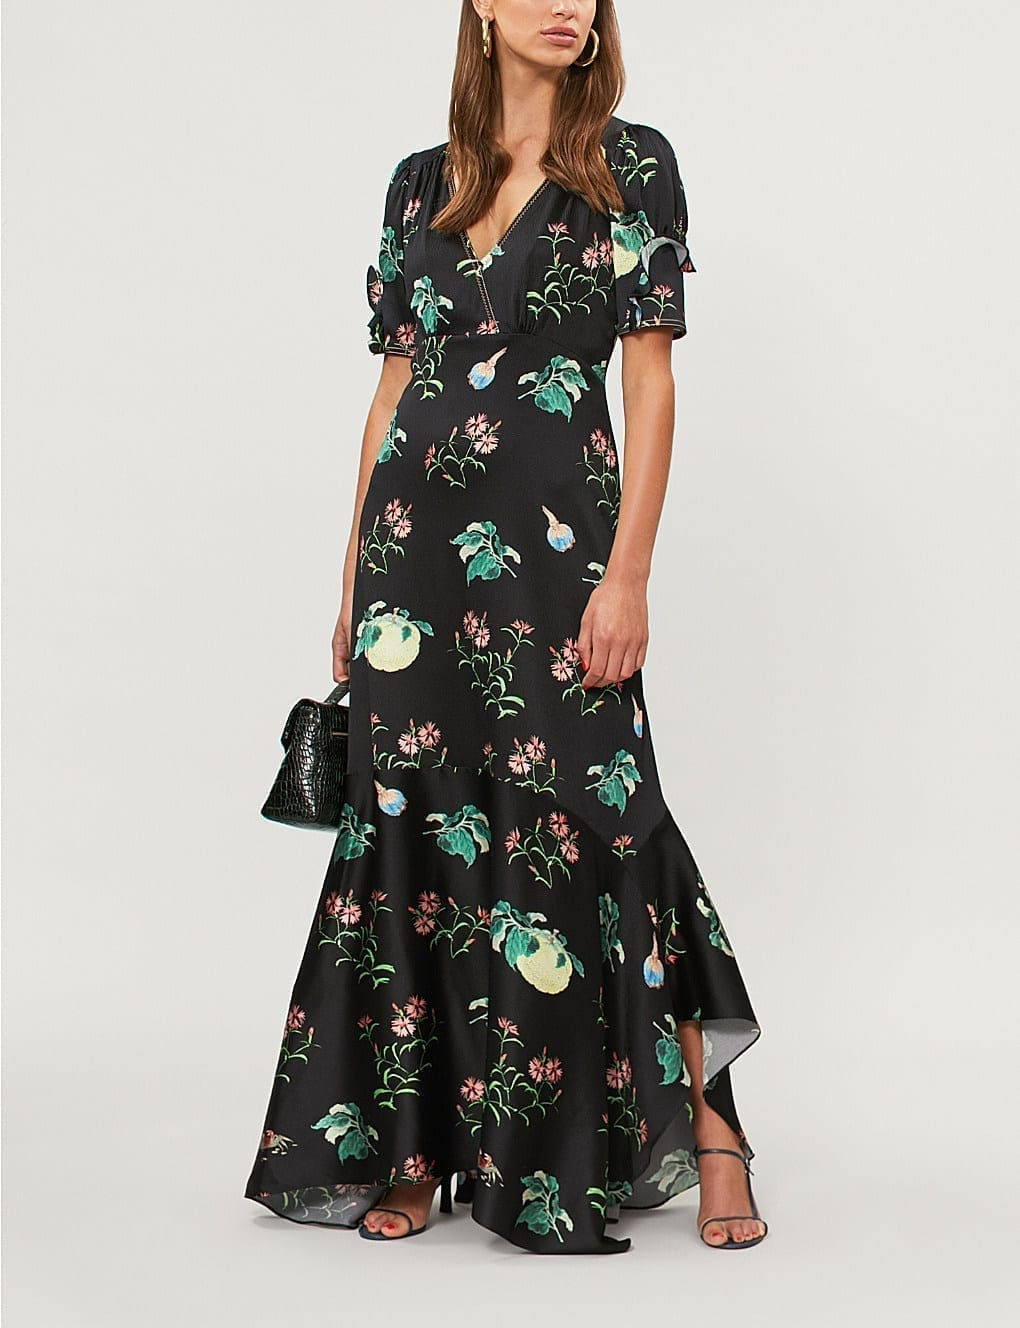 Peter pilotto fruit and flowers print silk black gown we select peter pilotto fruit and flowers print silk black gown mightylinksfo